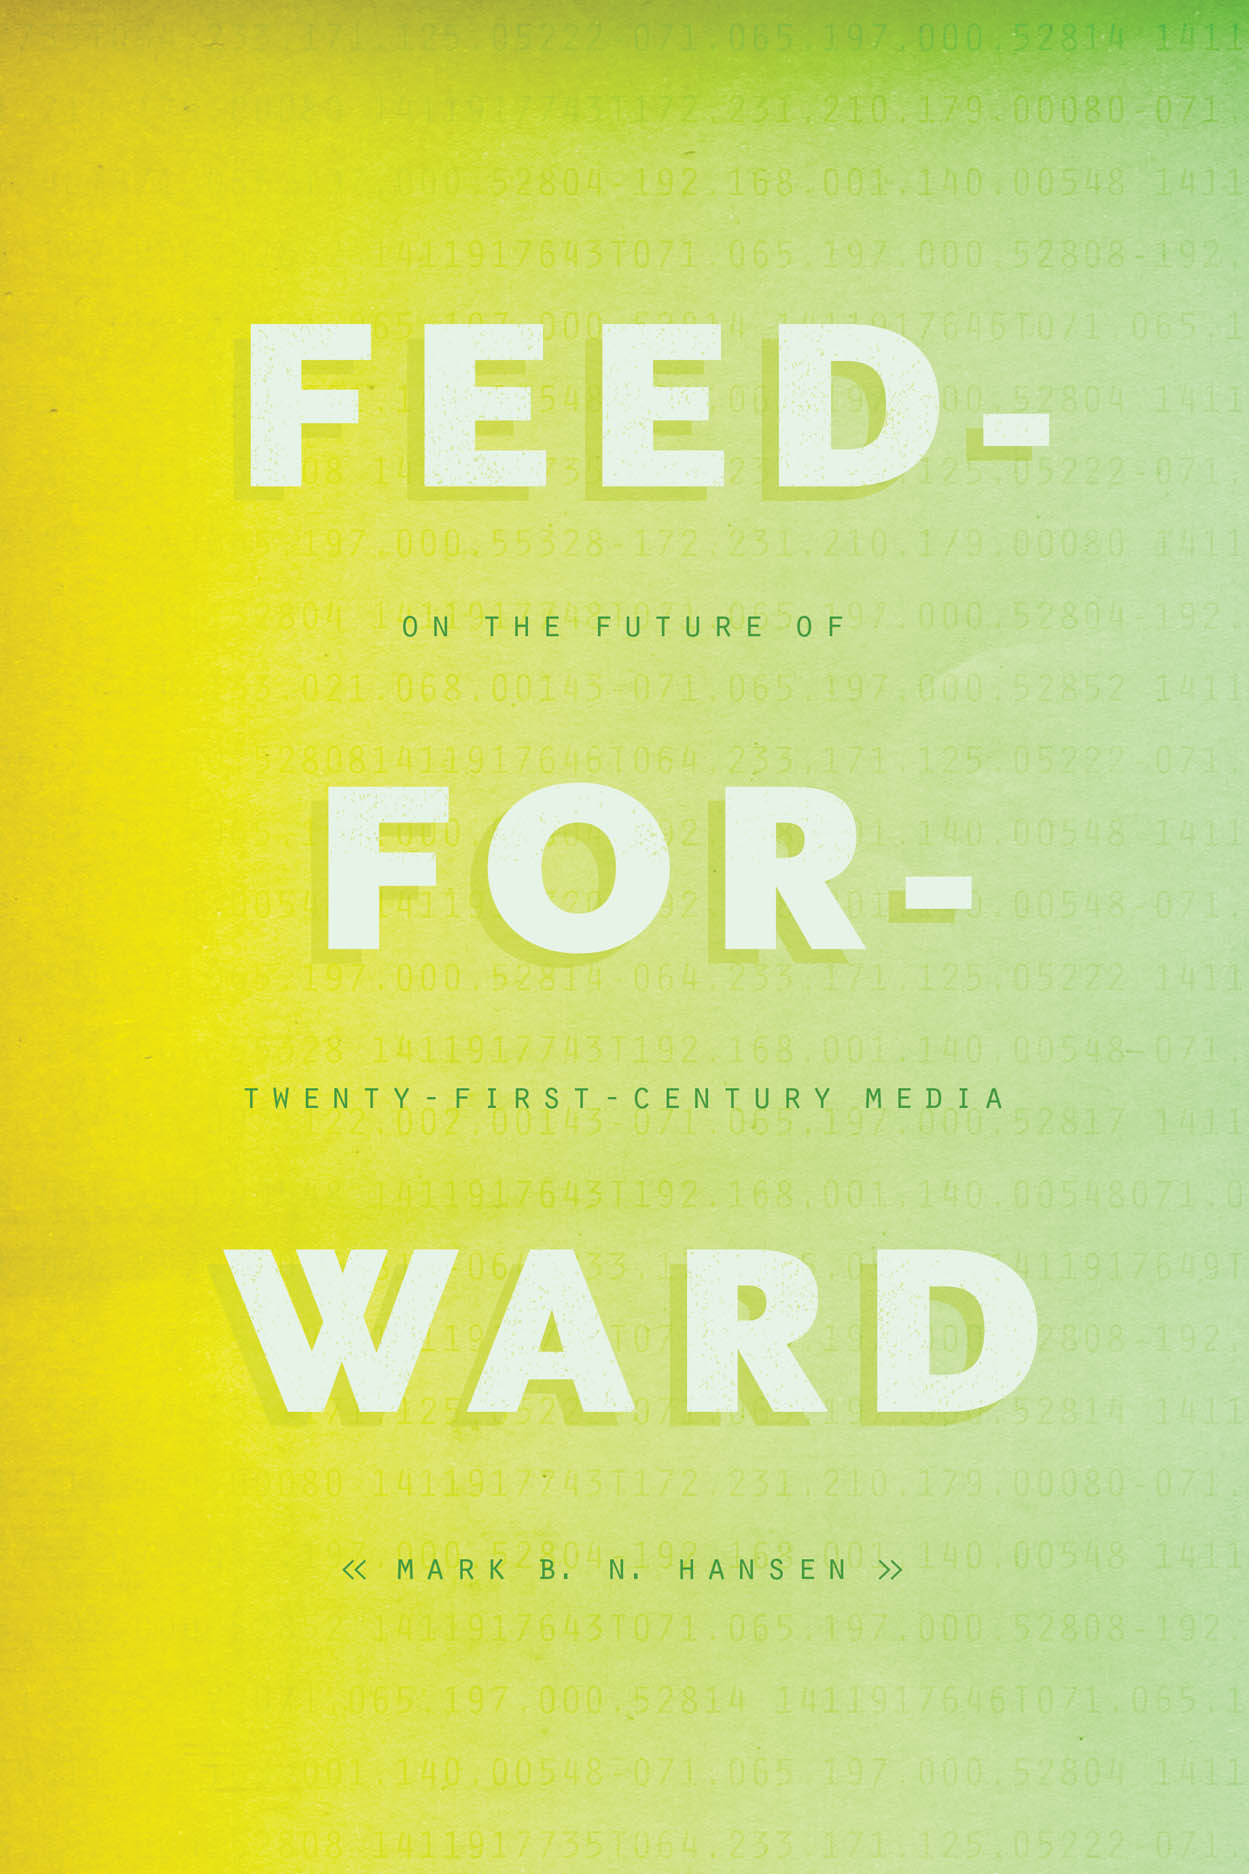 Feed-Forward: On the Future of Twenty-First-Century Media